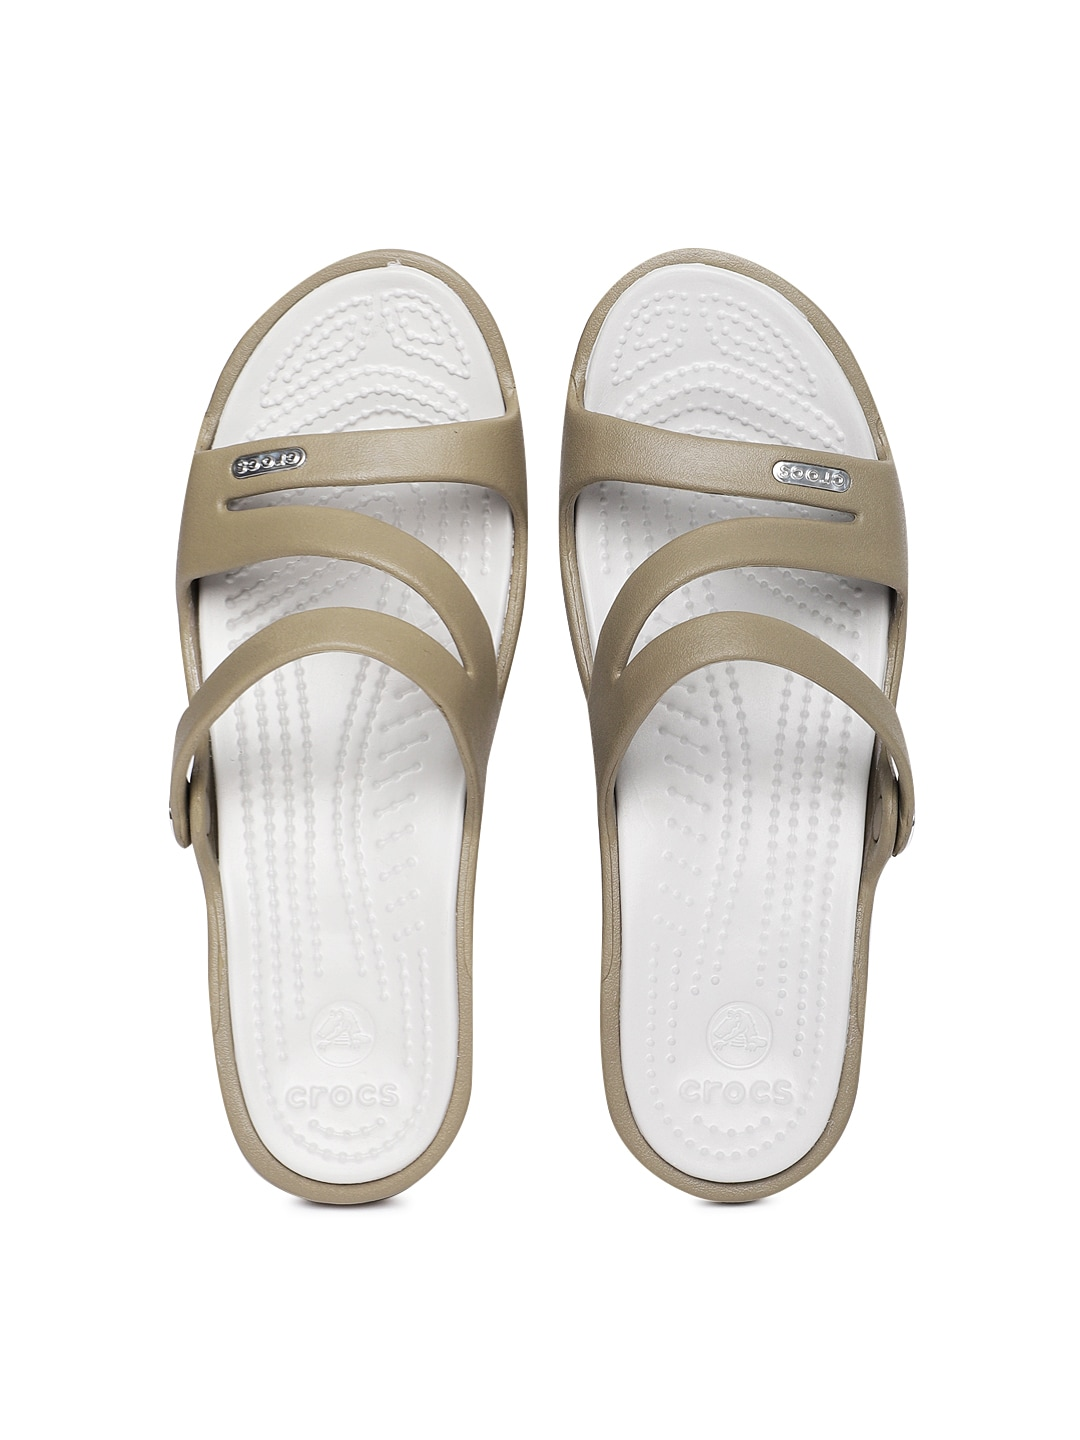 2eb47de11507 Crocs Shoes Online - Buy Crocs Flip Flops   Sandals Online in India - Myntra